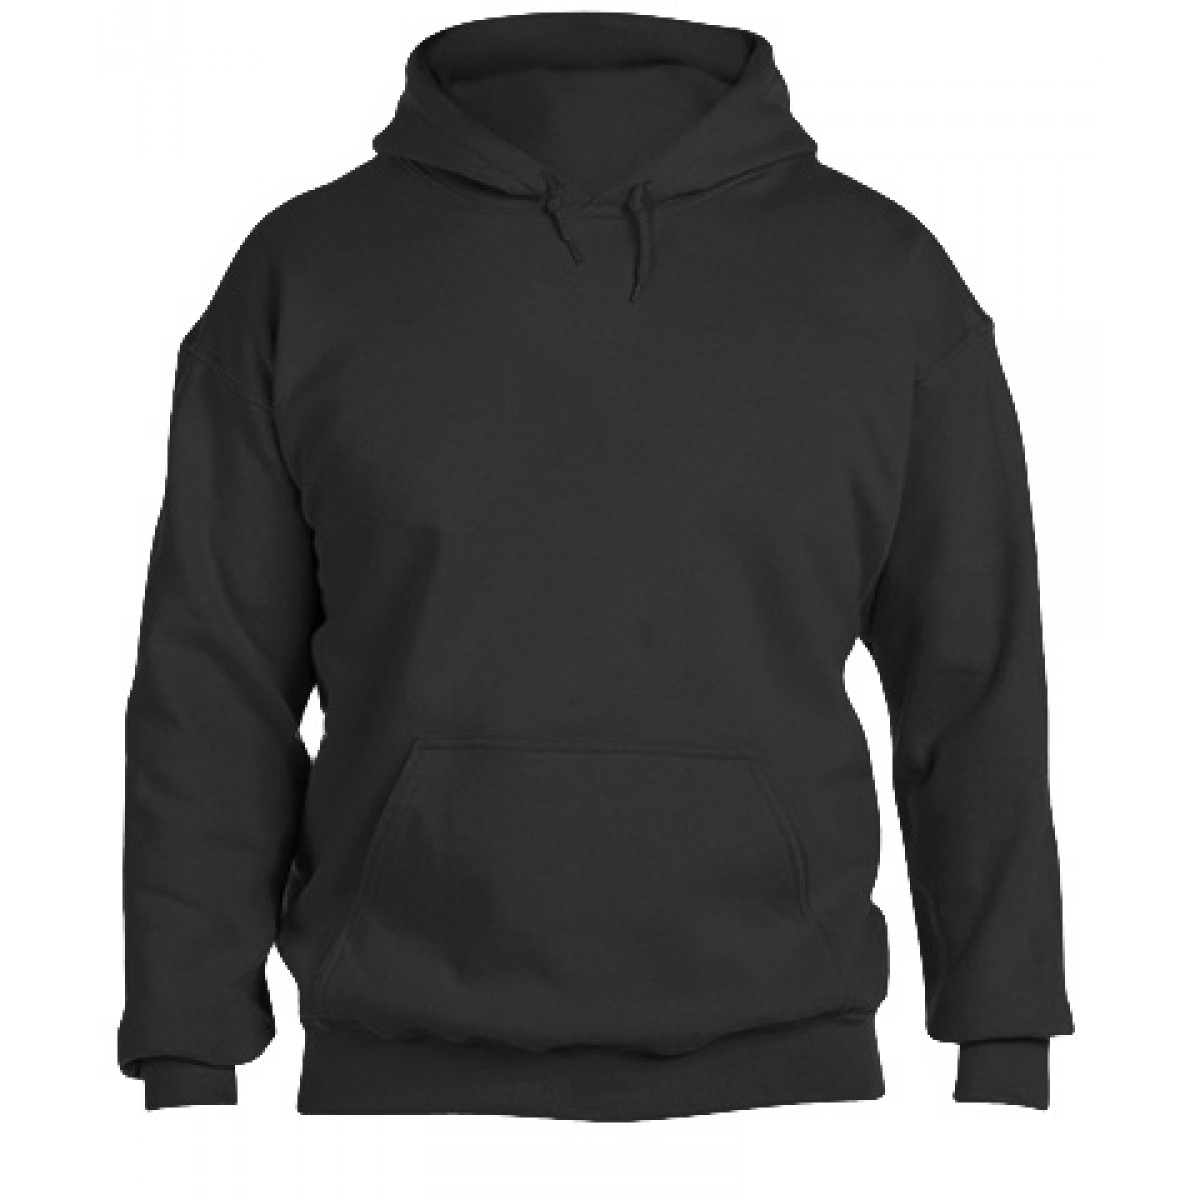 Solid Hooded Sweatshirt  50/50 Heavy Blend-Black-S